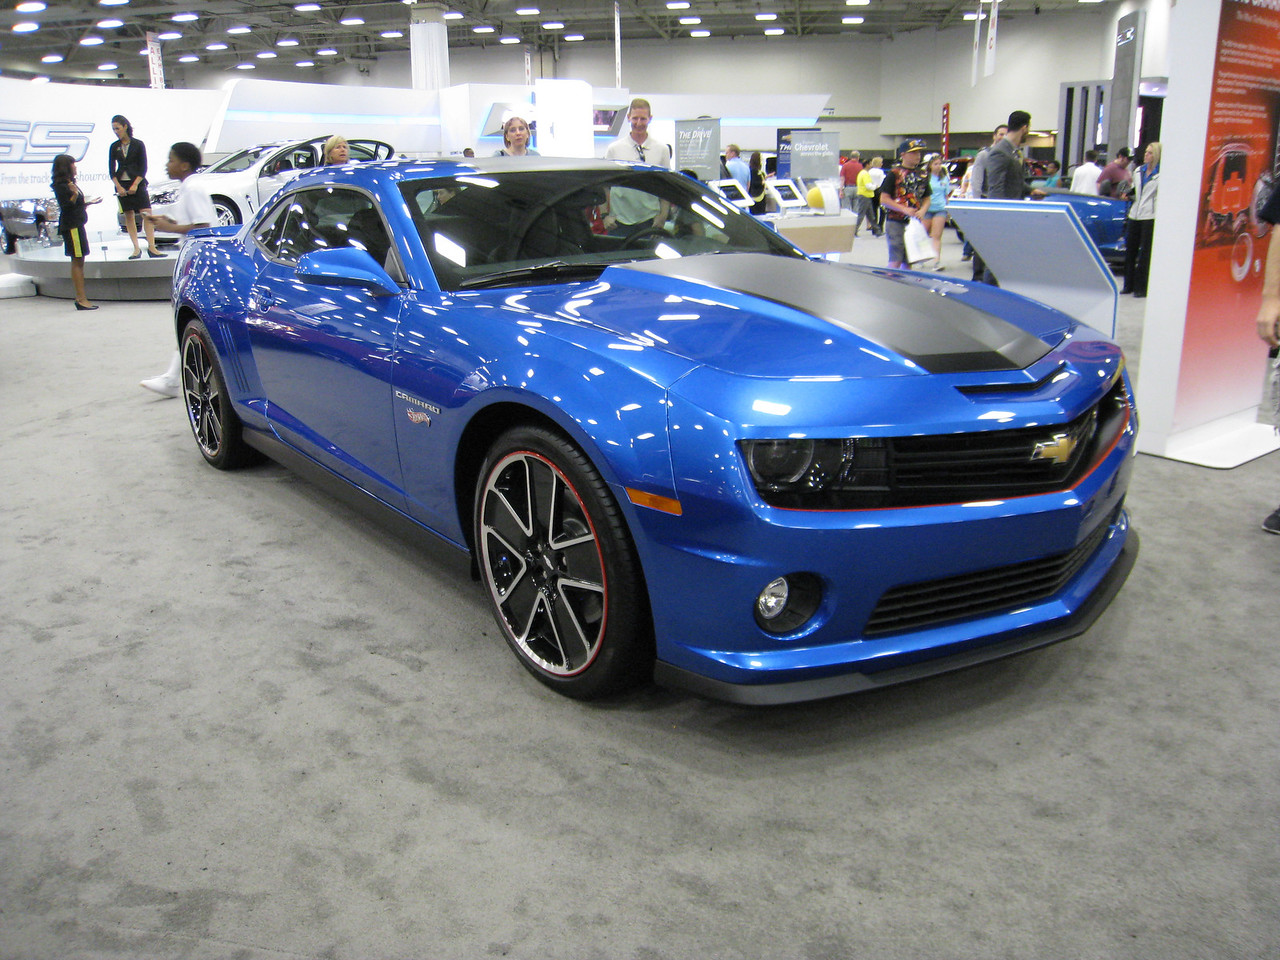 Camaro Hot Wheels Edition